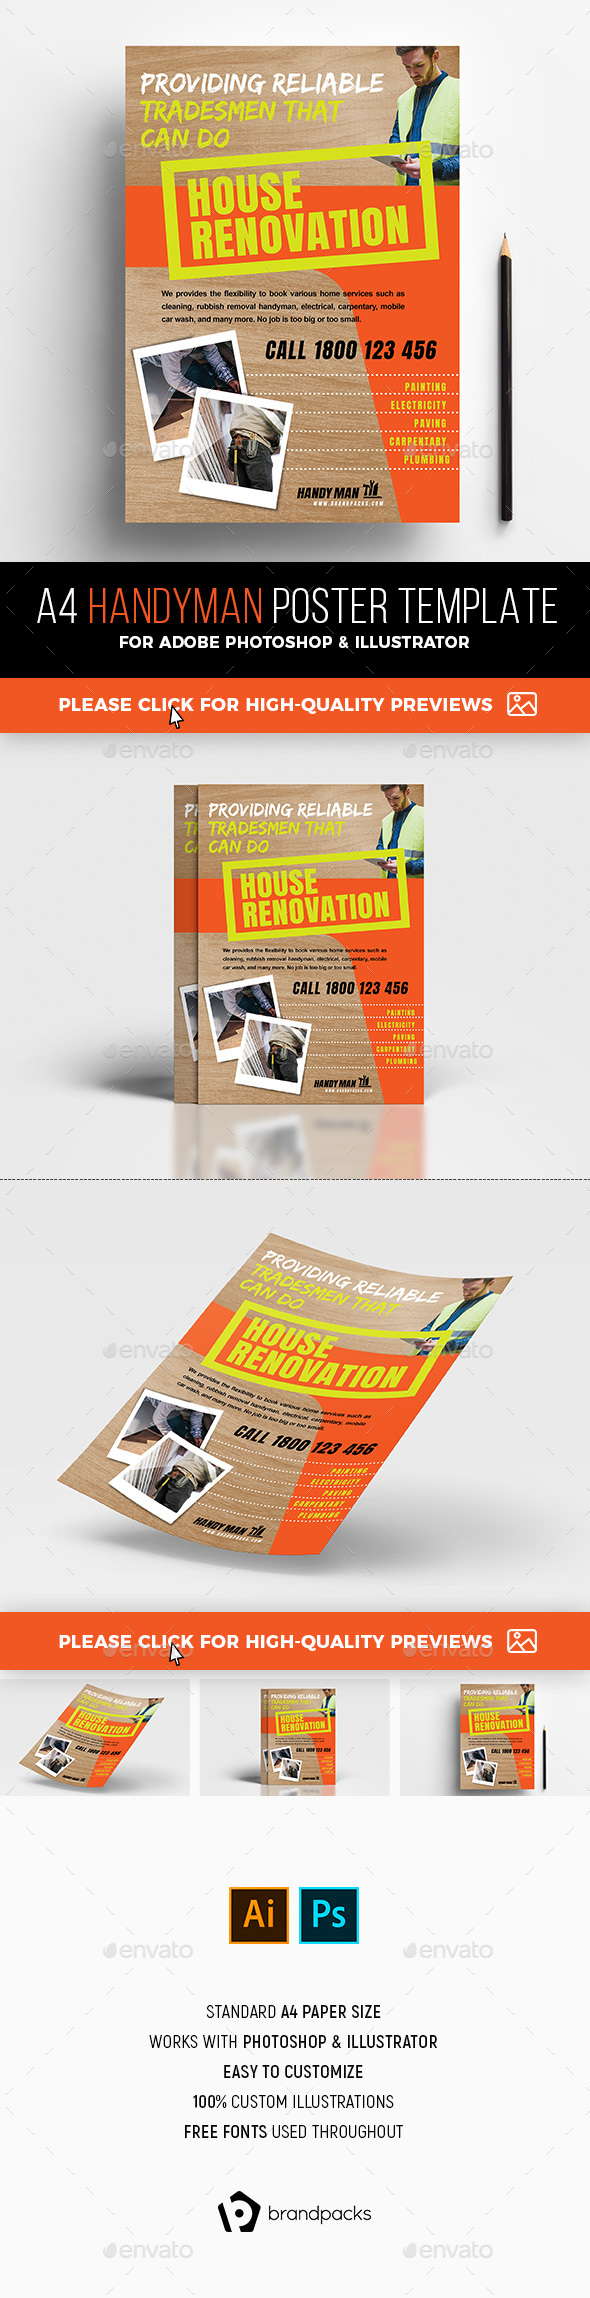 A4 Handyman Poster Template - Commerce Flyers